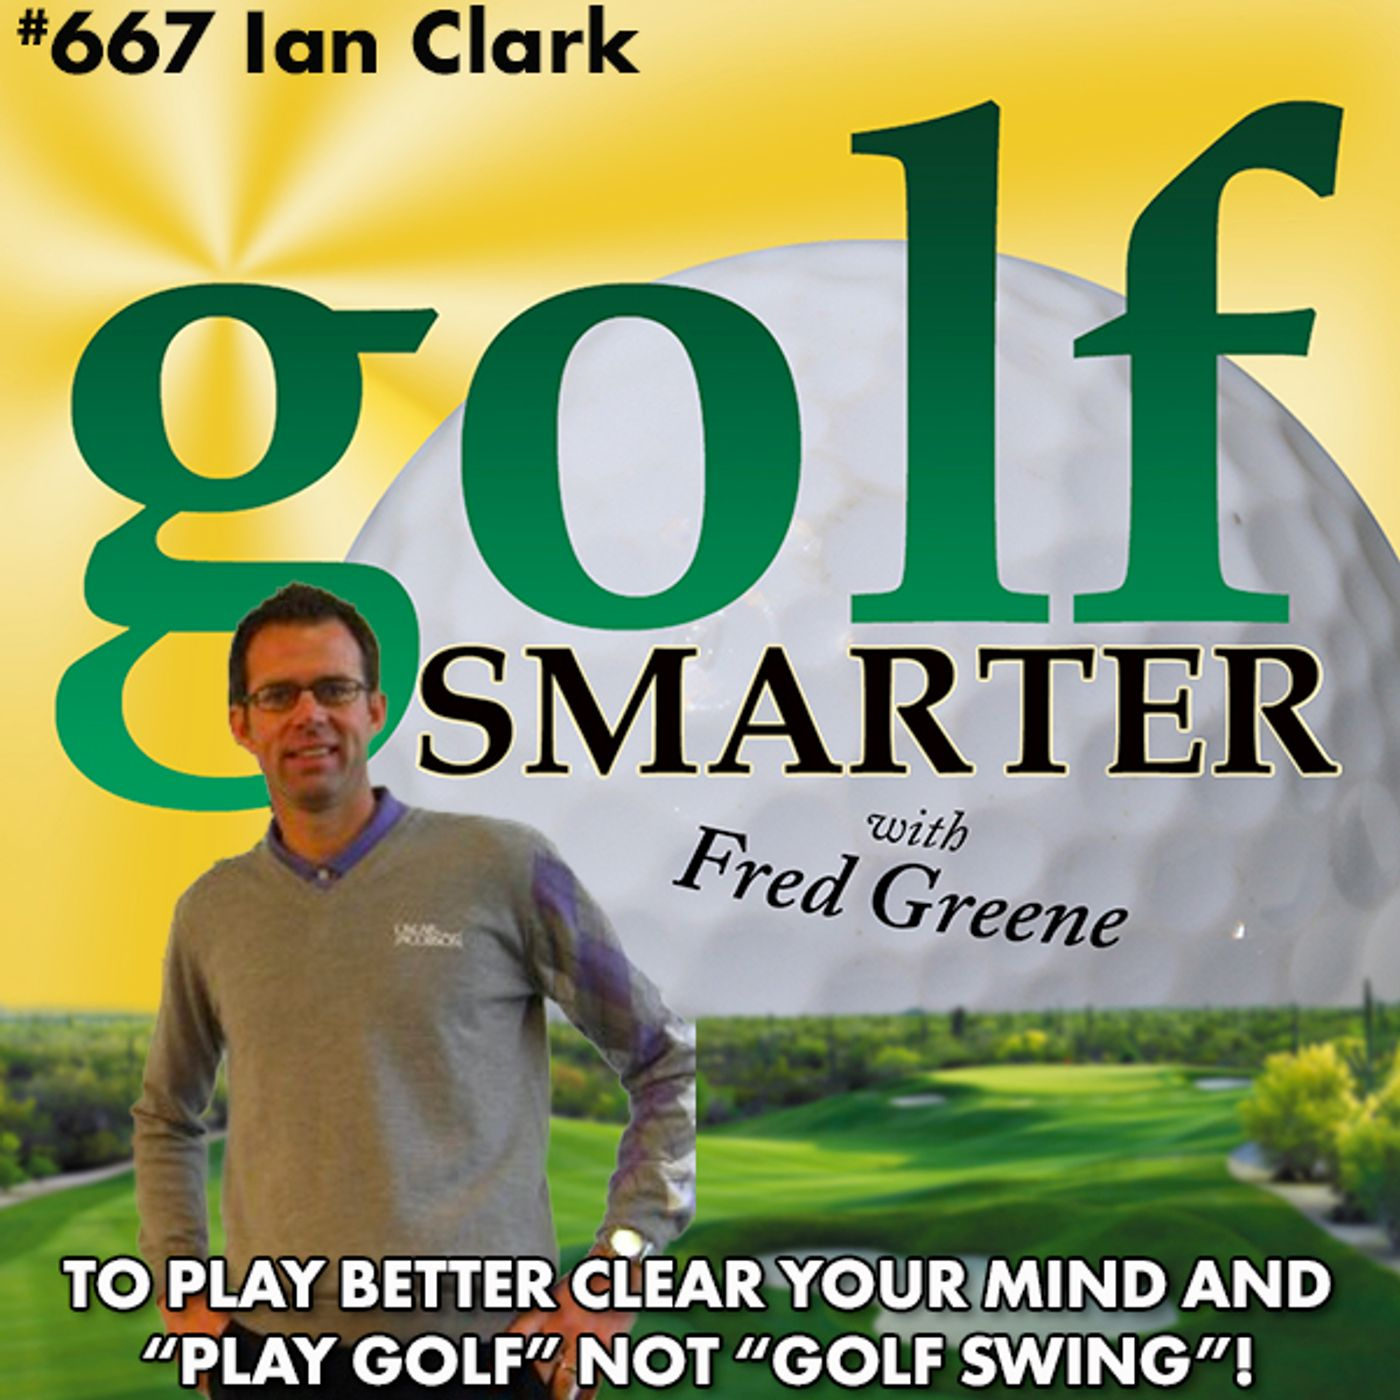 """To Play Better Clear Your Mind and Don't Play """"Golf Swing"""" Just """"Play Golf"""" with Ian Clark"""